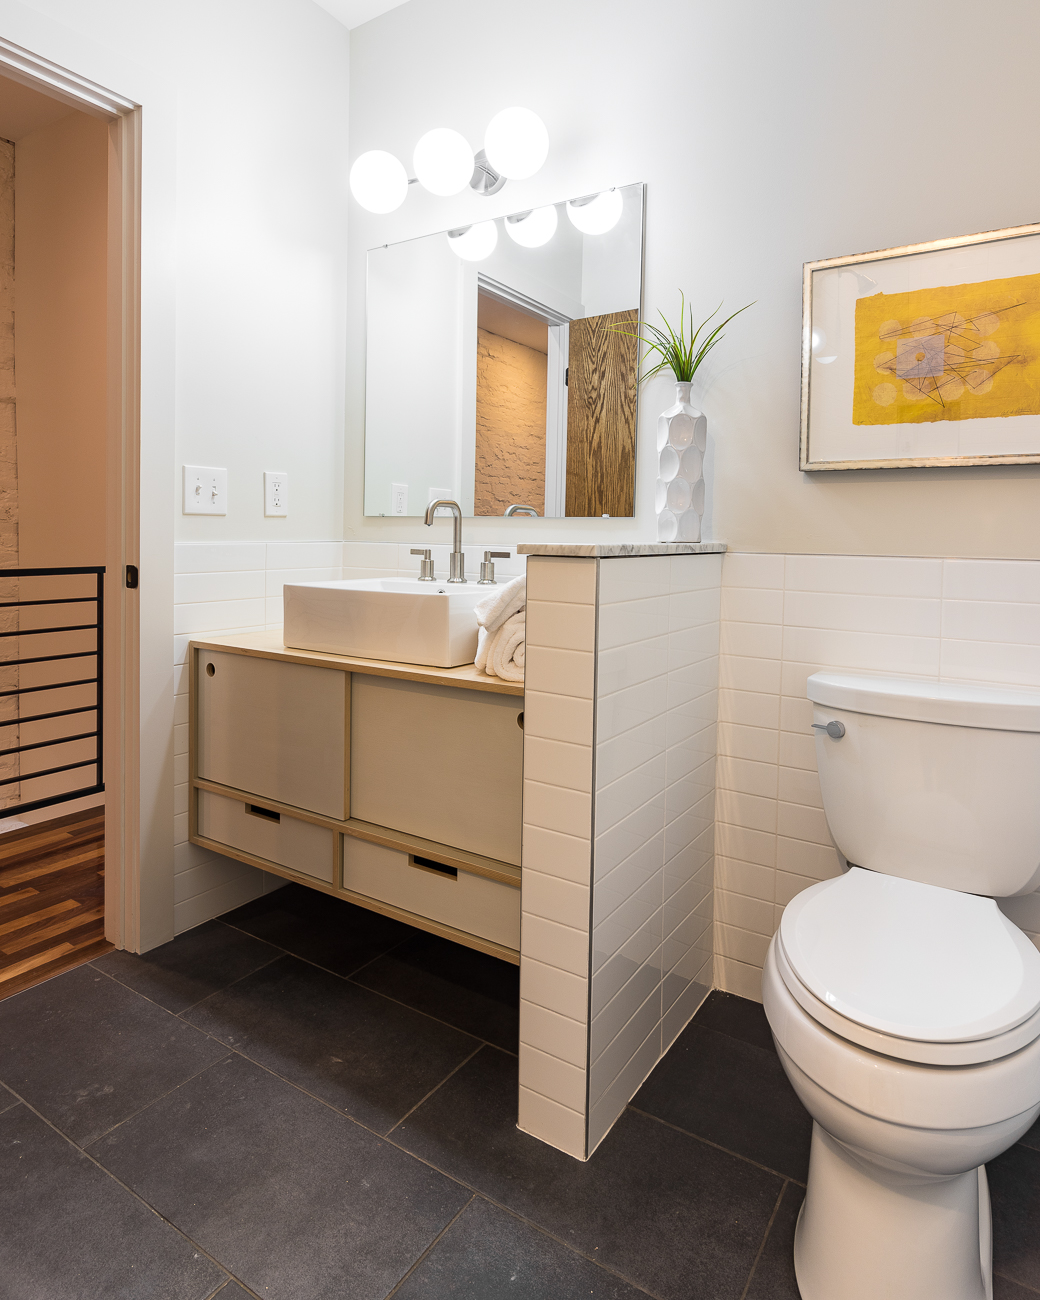 The house features two full and one half bathroom. 1428 Main Street is listed for $489,000 by Michael Chewning and Seth Maney with Coldwell Banker West Shell. / Image: Phil Armstrong, Cincinnati Refined // Published: 2.17.19